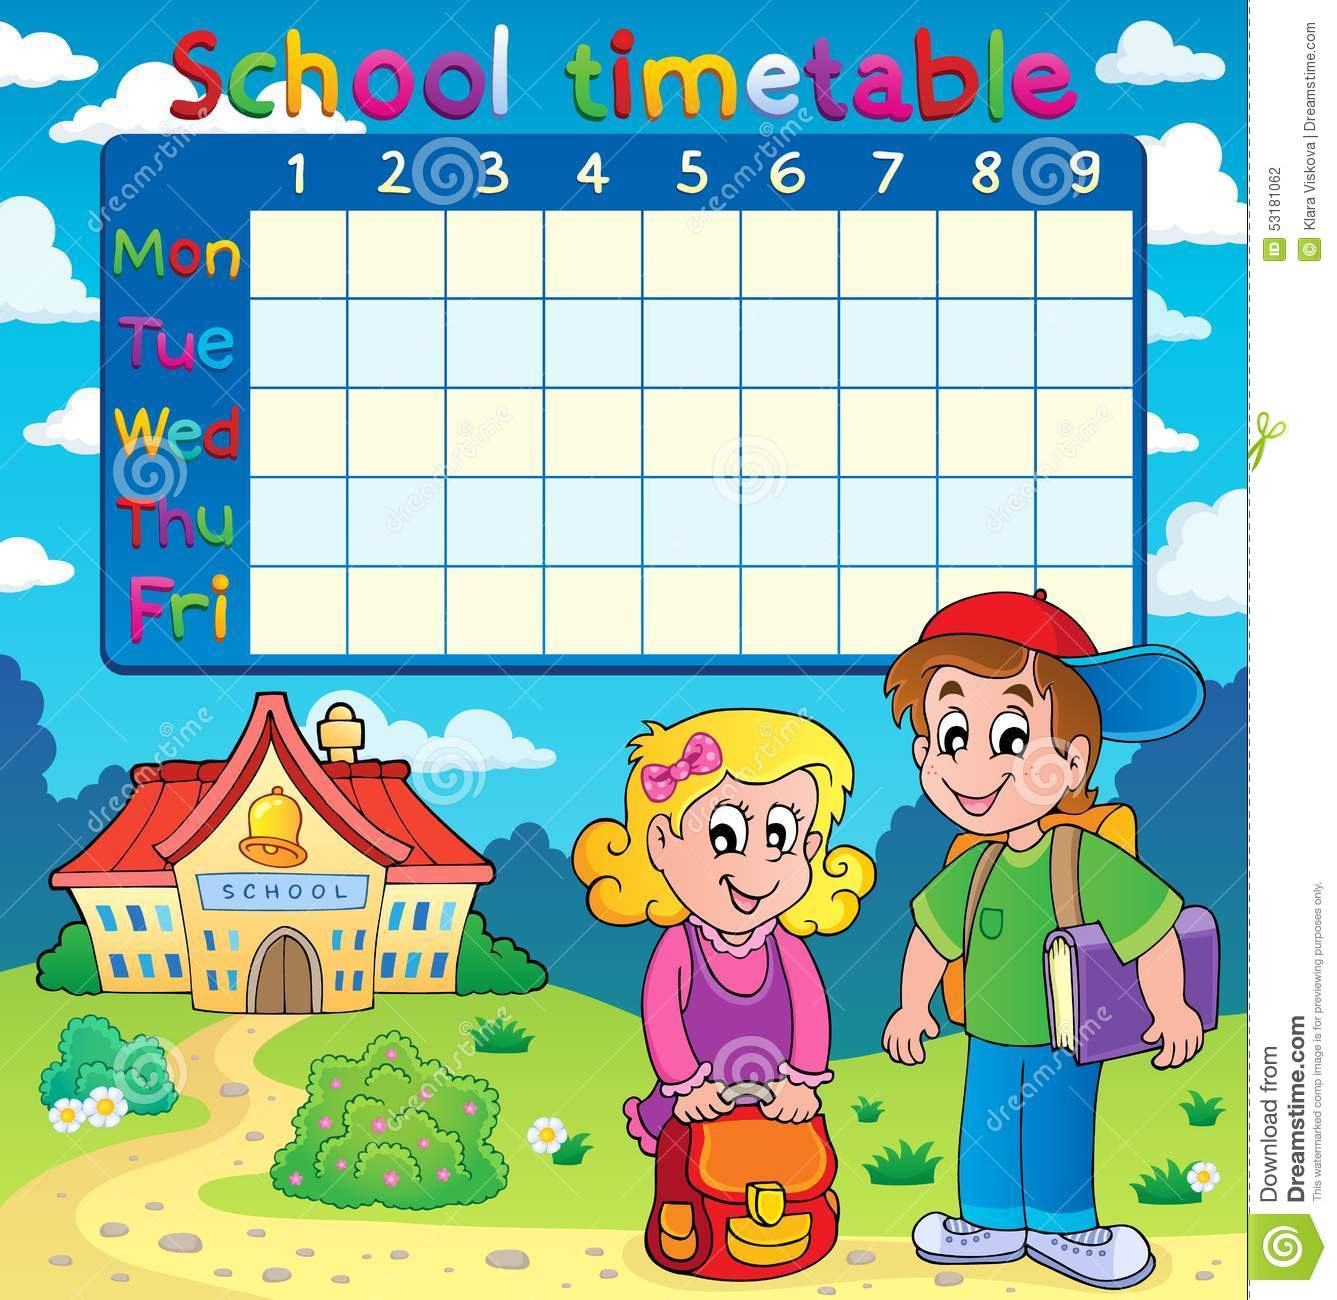 Quotes On School Time Table: School Timetable With Two Children Stock Vector